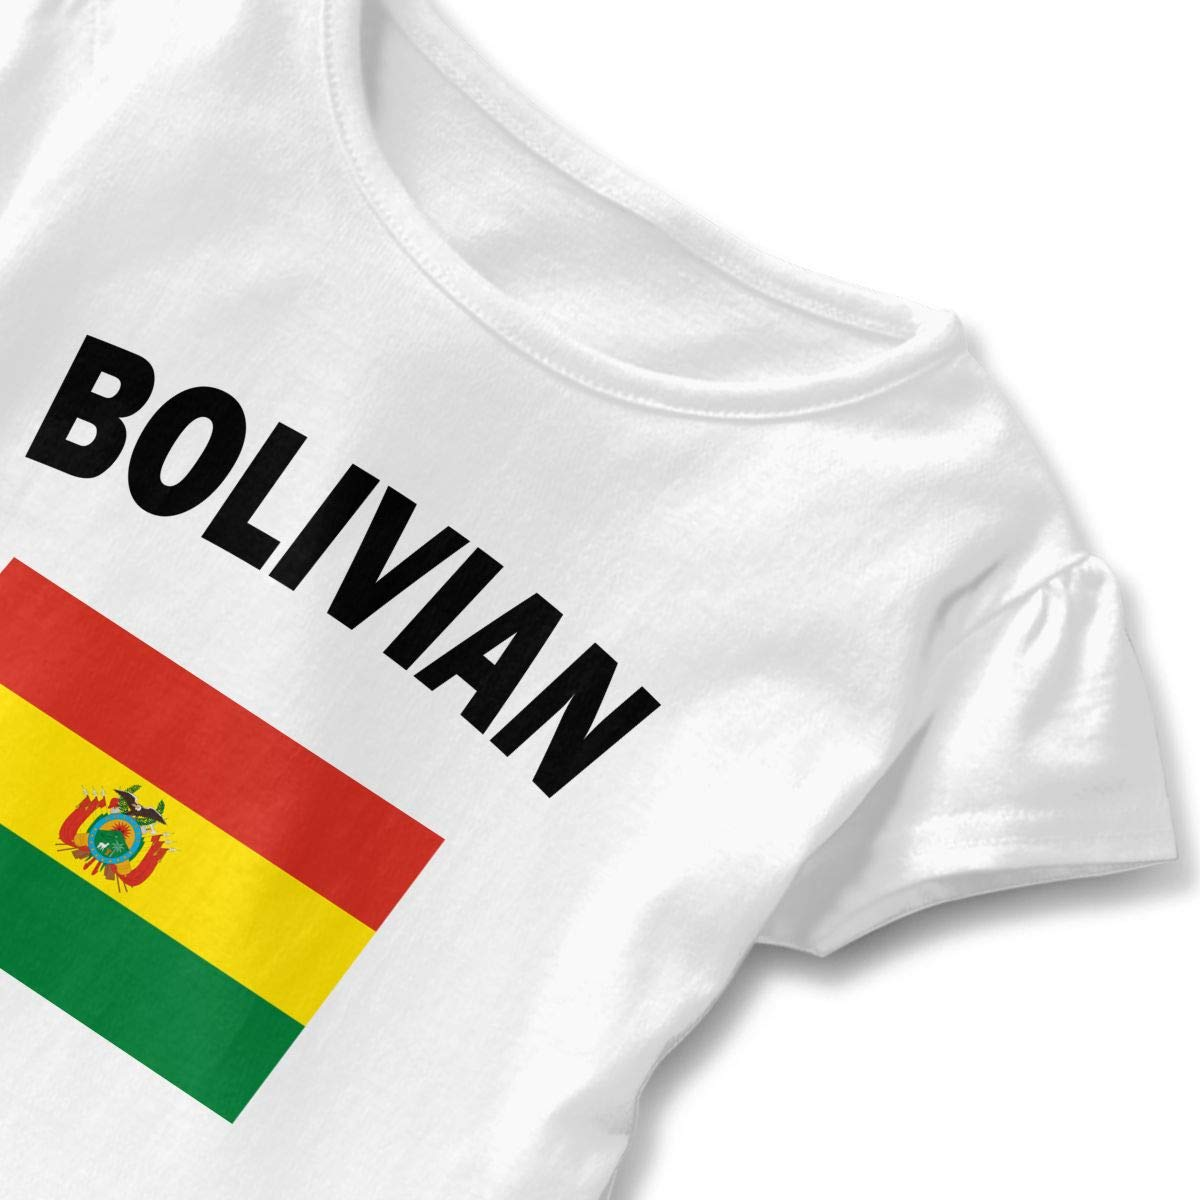 HYBDX9T Toddler Baby Girl Bolivian Flag Funny Short Sleeve Cotton T Shirts Basic Tops Tee Clothes